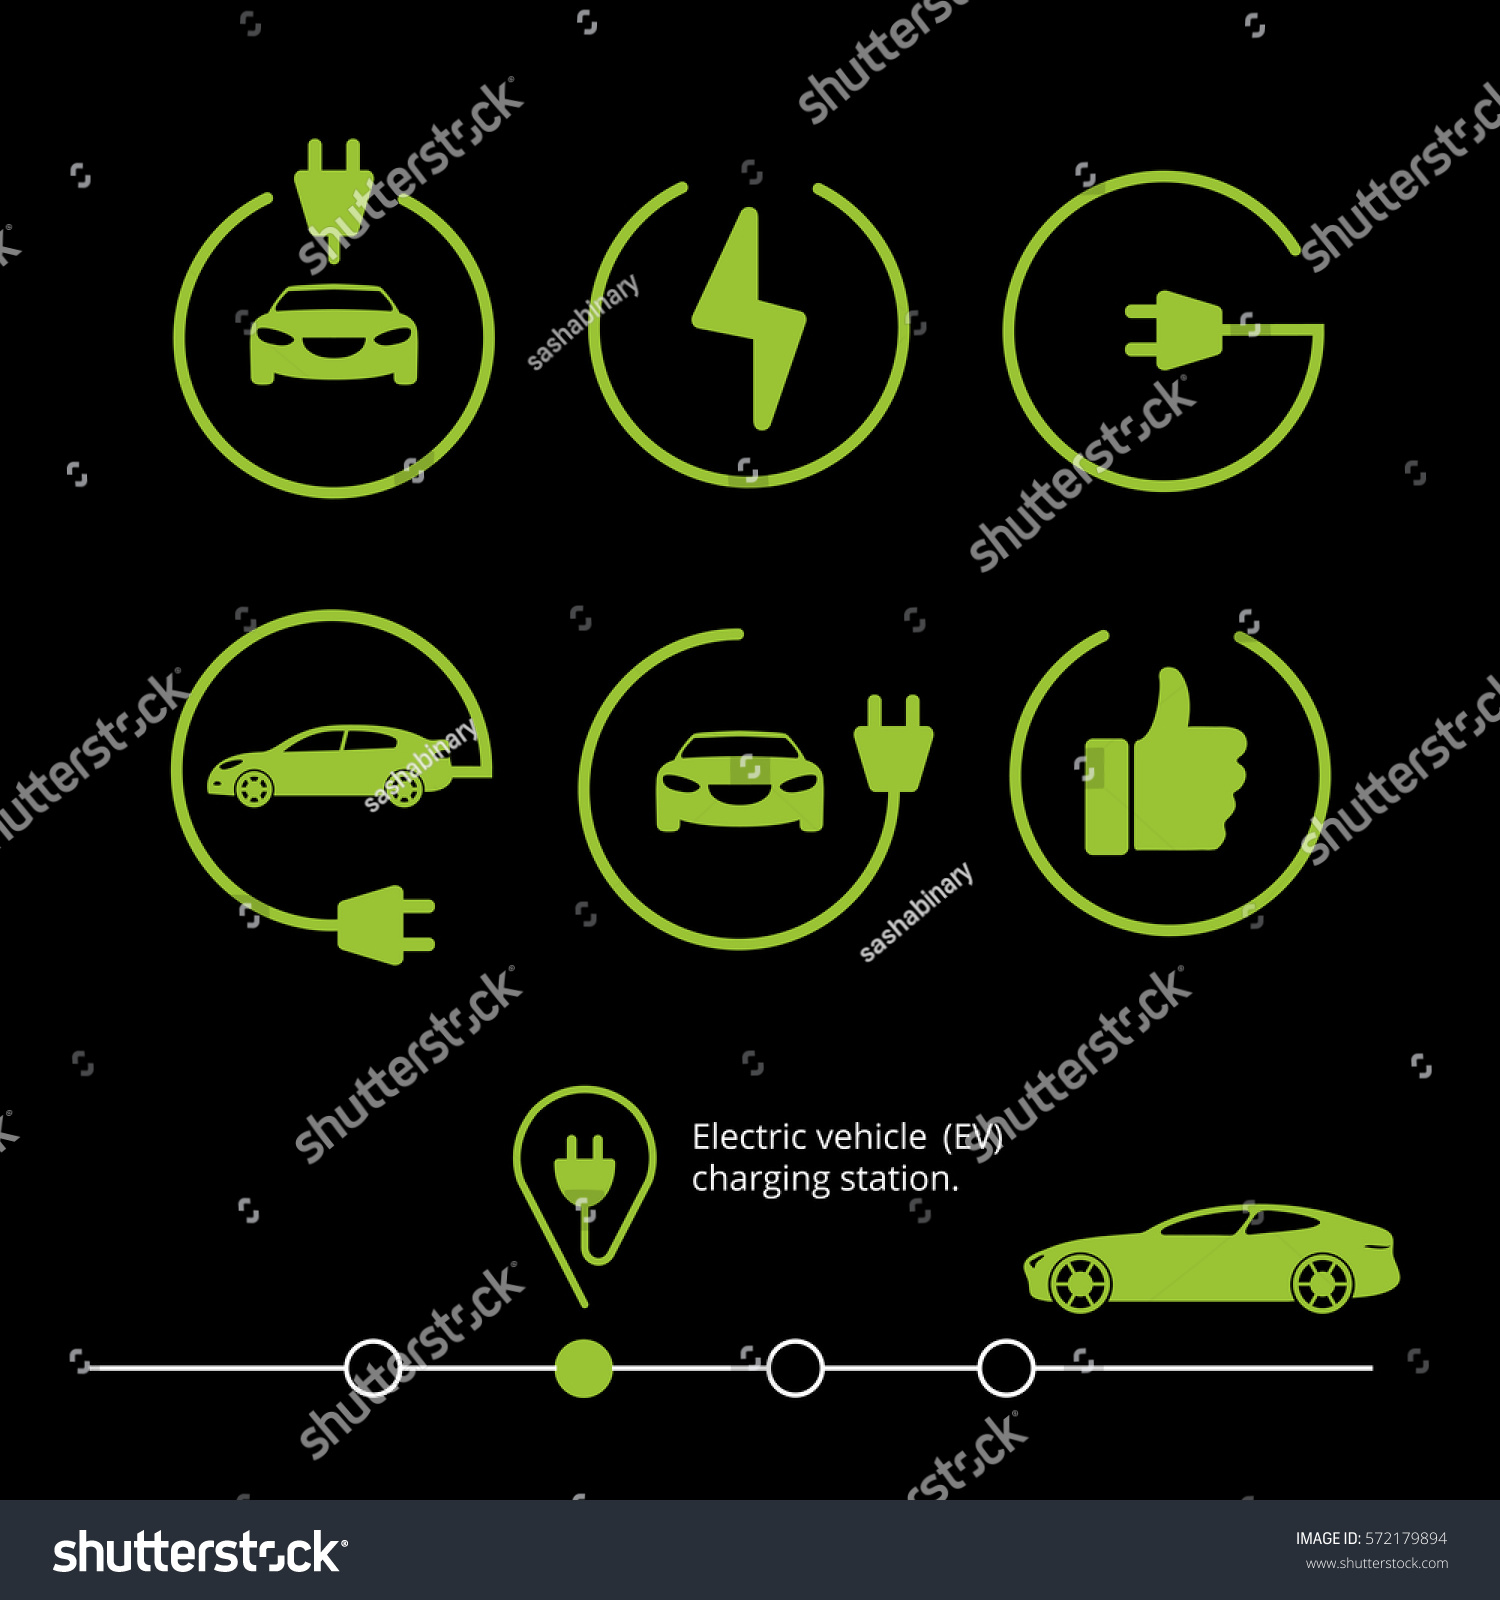 Vector Electric Vehicle Car Icon Stock Royalty Free Circuits Circuitsymbols Jpg 646 Electrical Hybrid Illustration